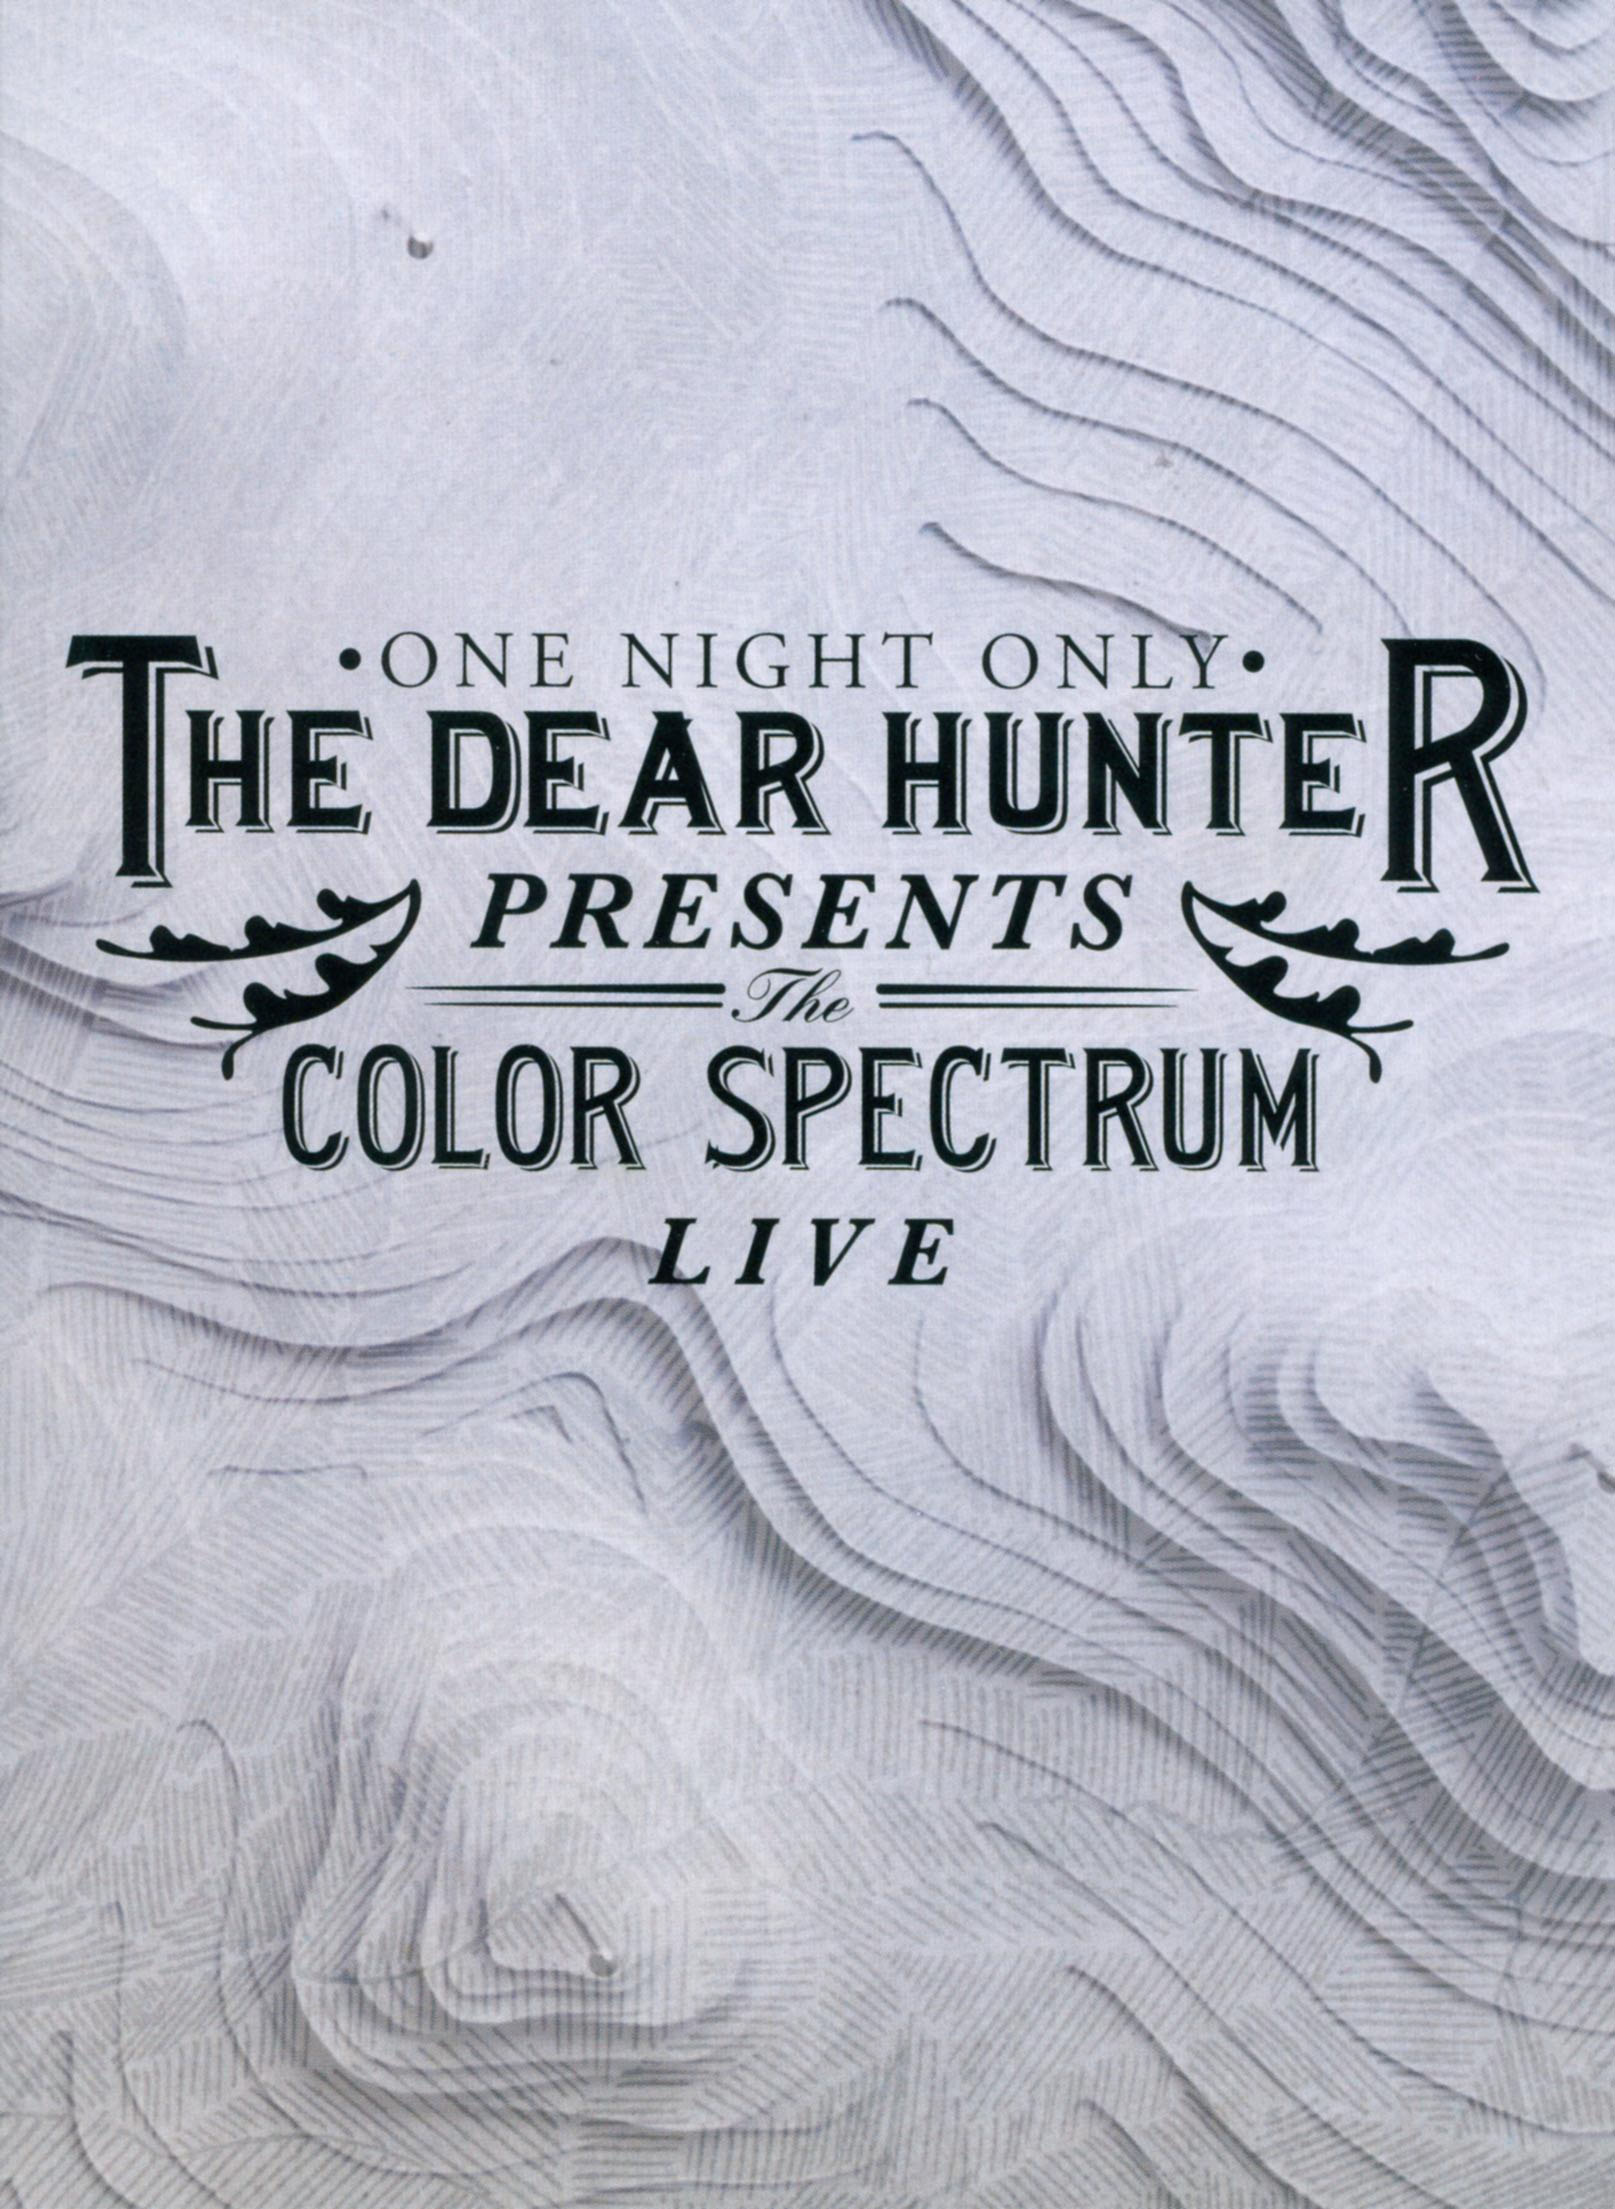 The Dear Hunter Presents: The Color Spectrum Live